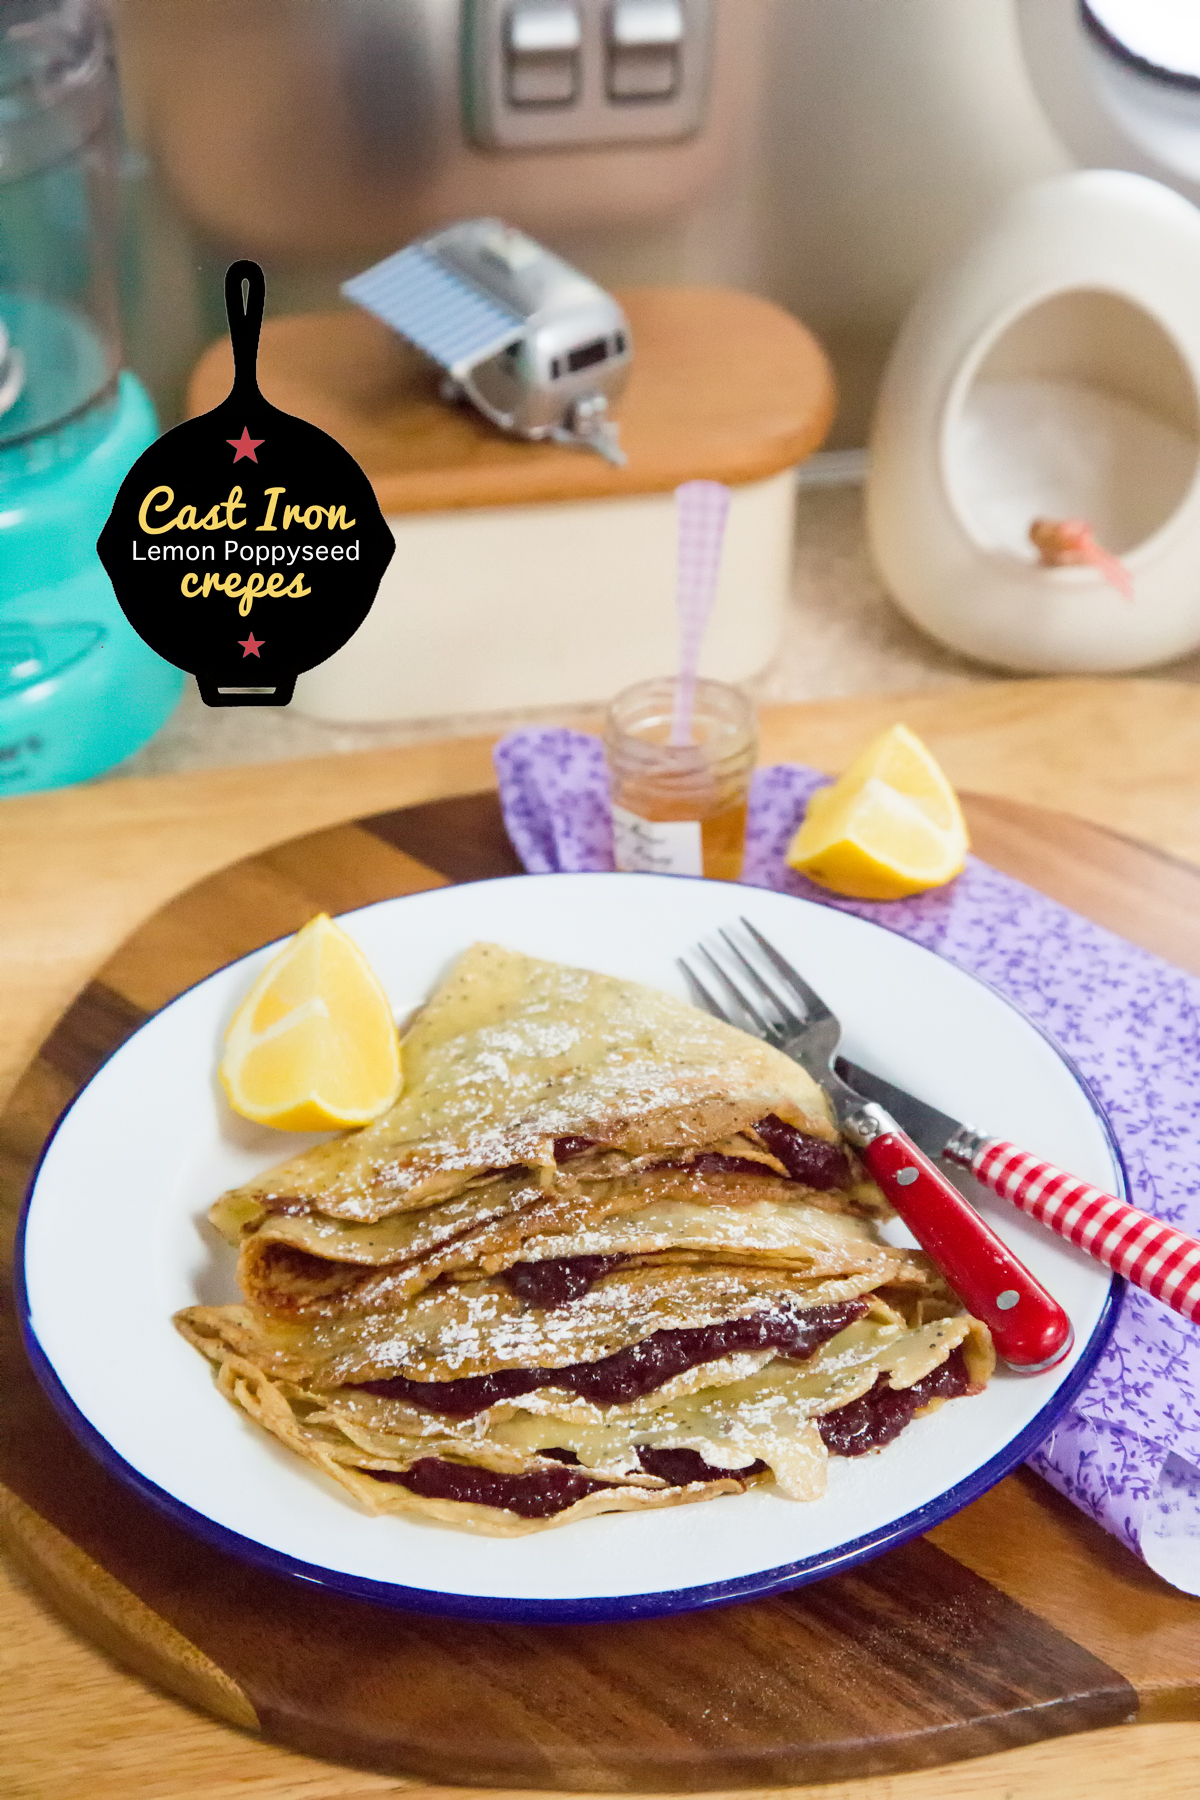 Lemon Poppyseed Honeyed Crepes via J5MM.com